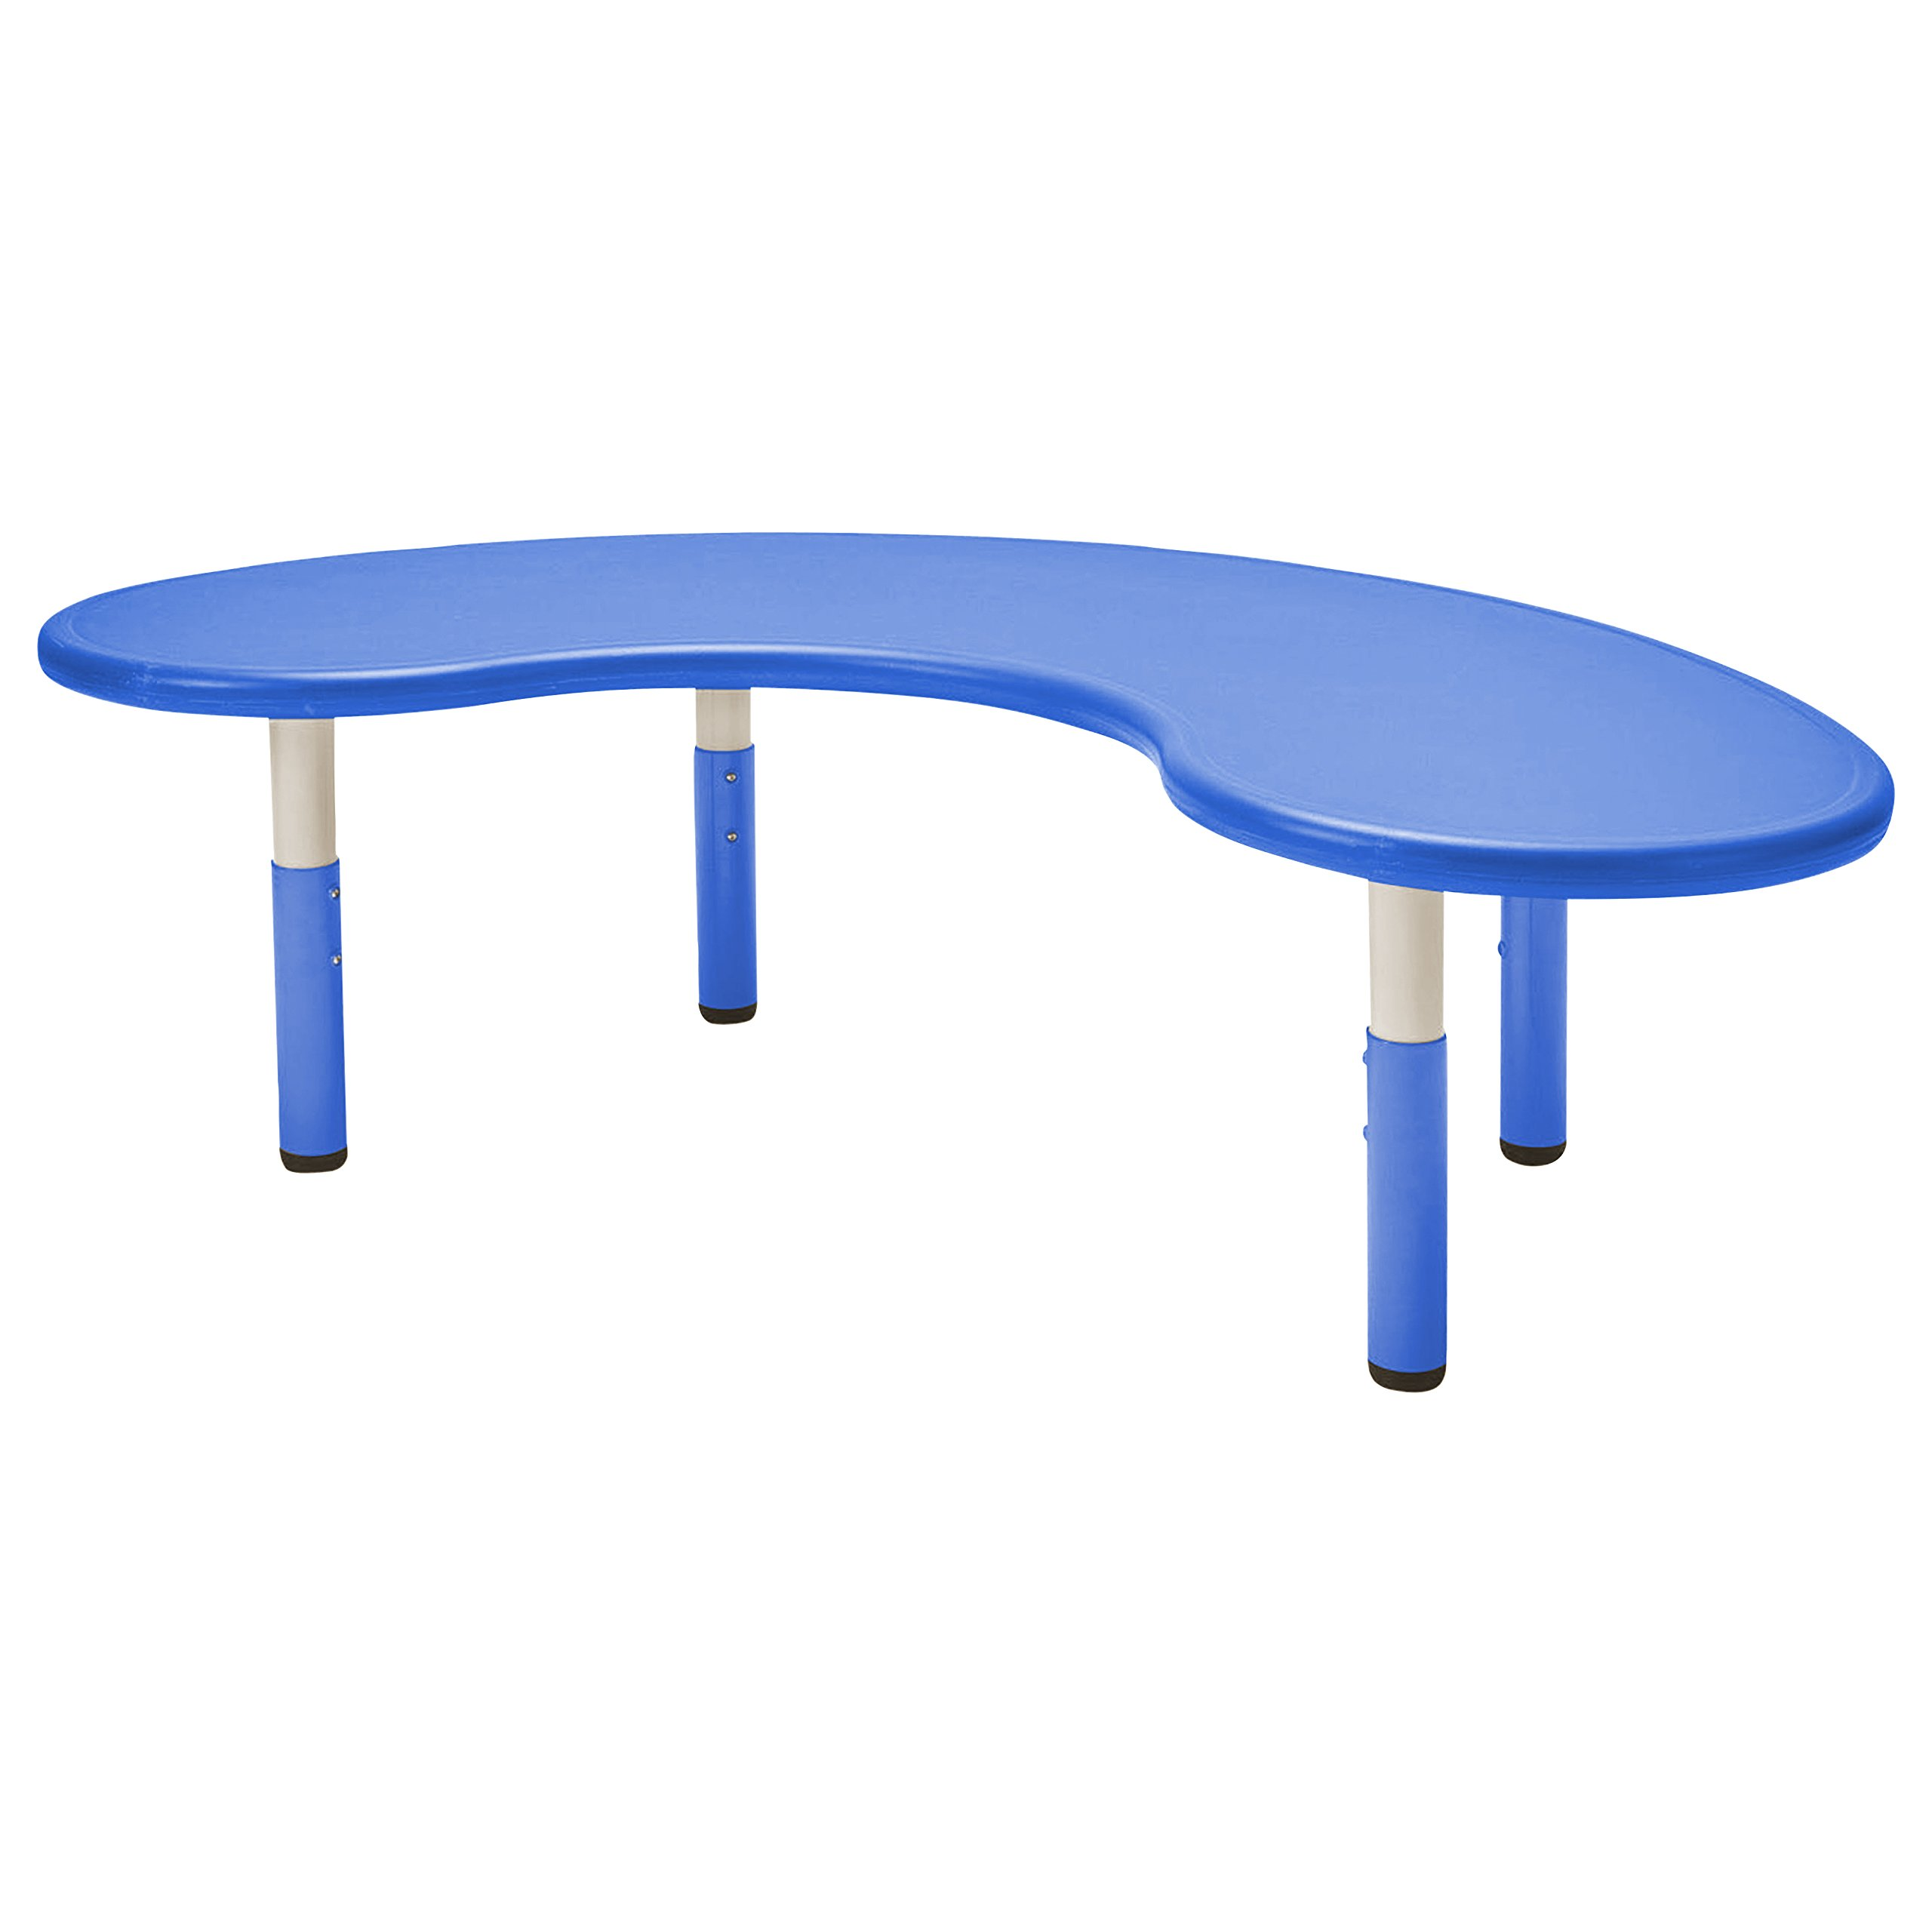 ECR4Kids 65'' Kidney Resin Activity Table - Indoor/Outdoor Kids Table for Classrooms, Daycares, Playgrounds, Blue